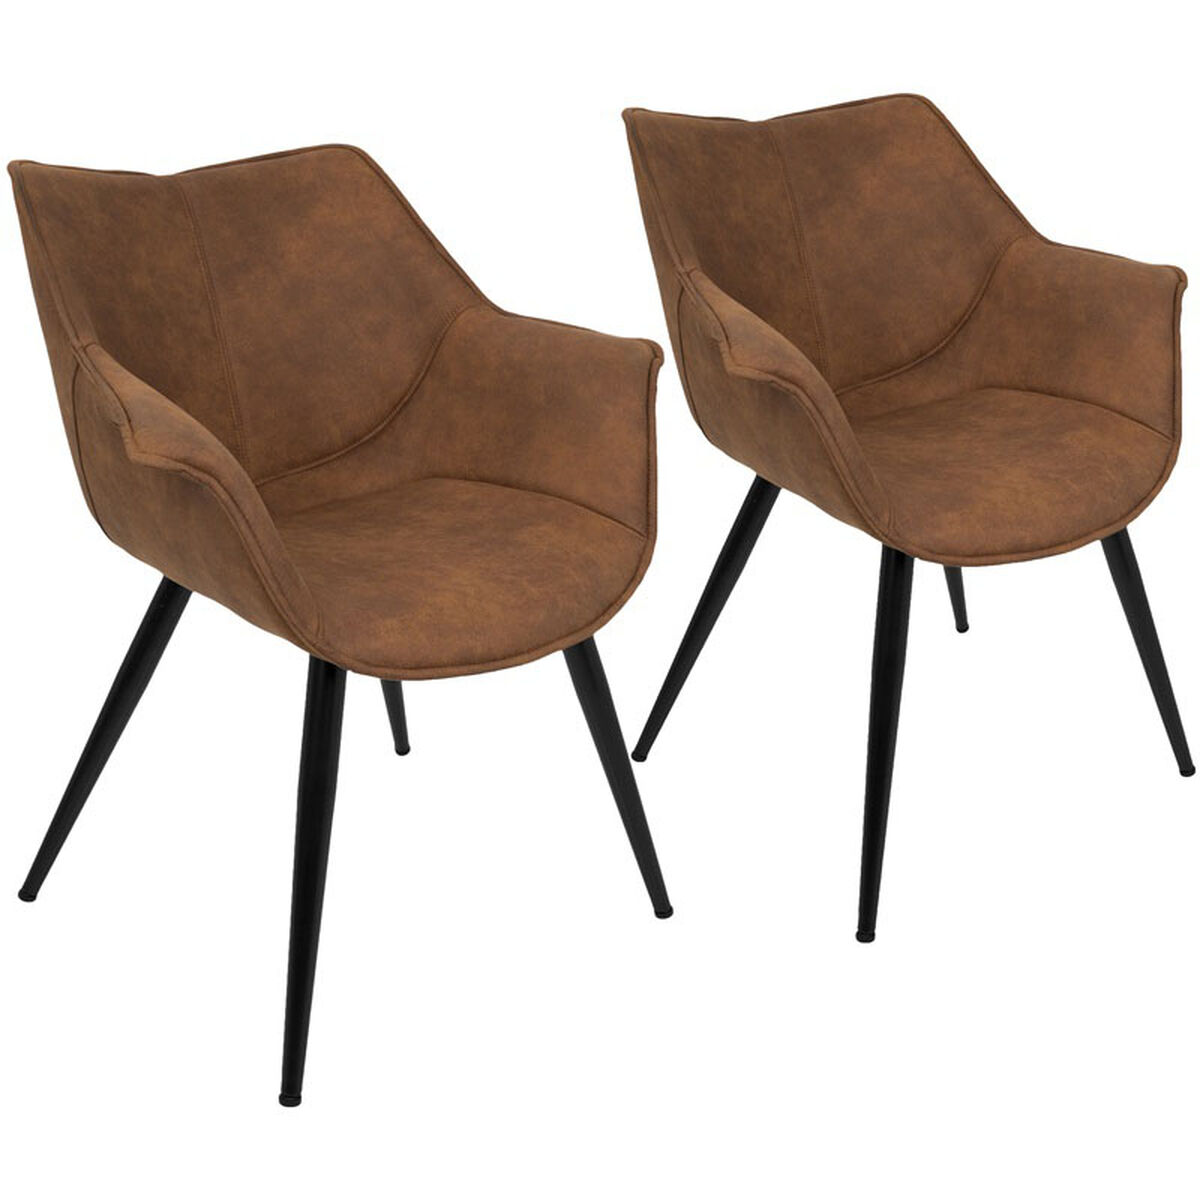 Our Wrangler Contemporary Fabric Accent Chair Rust Set Of 2 Is On Now